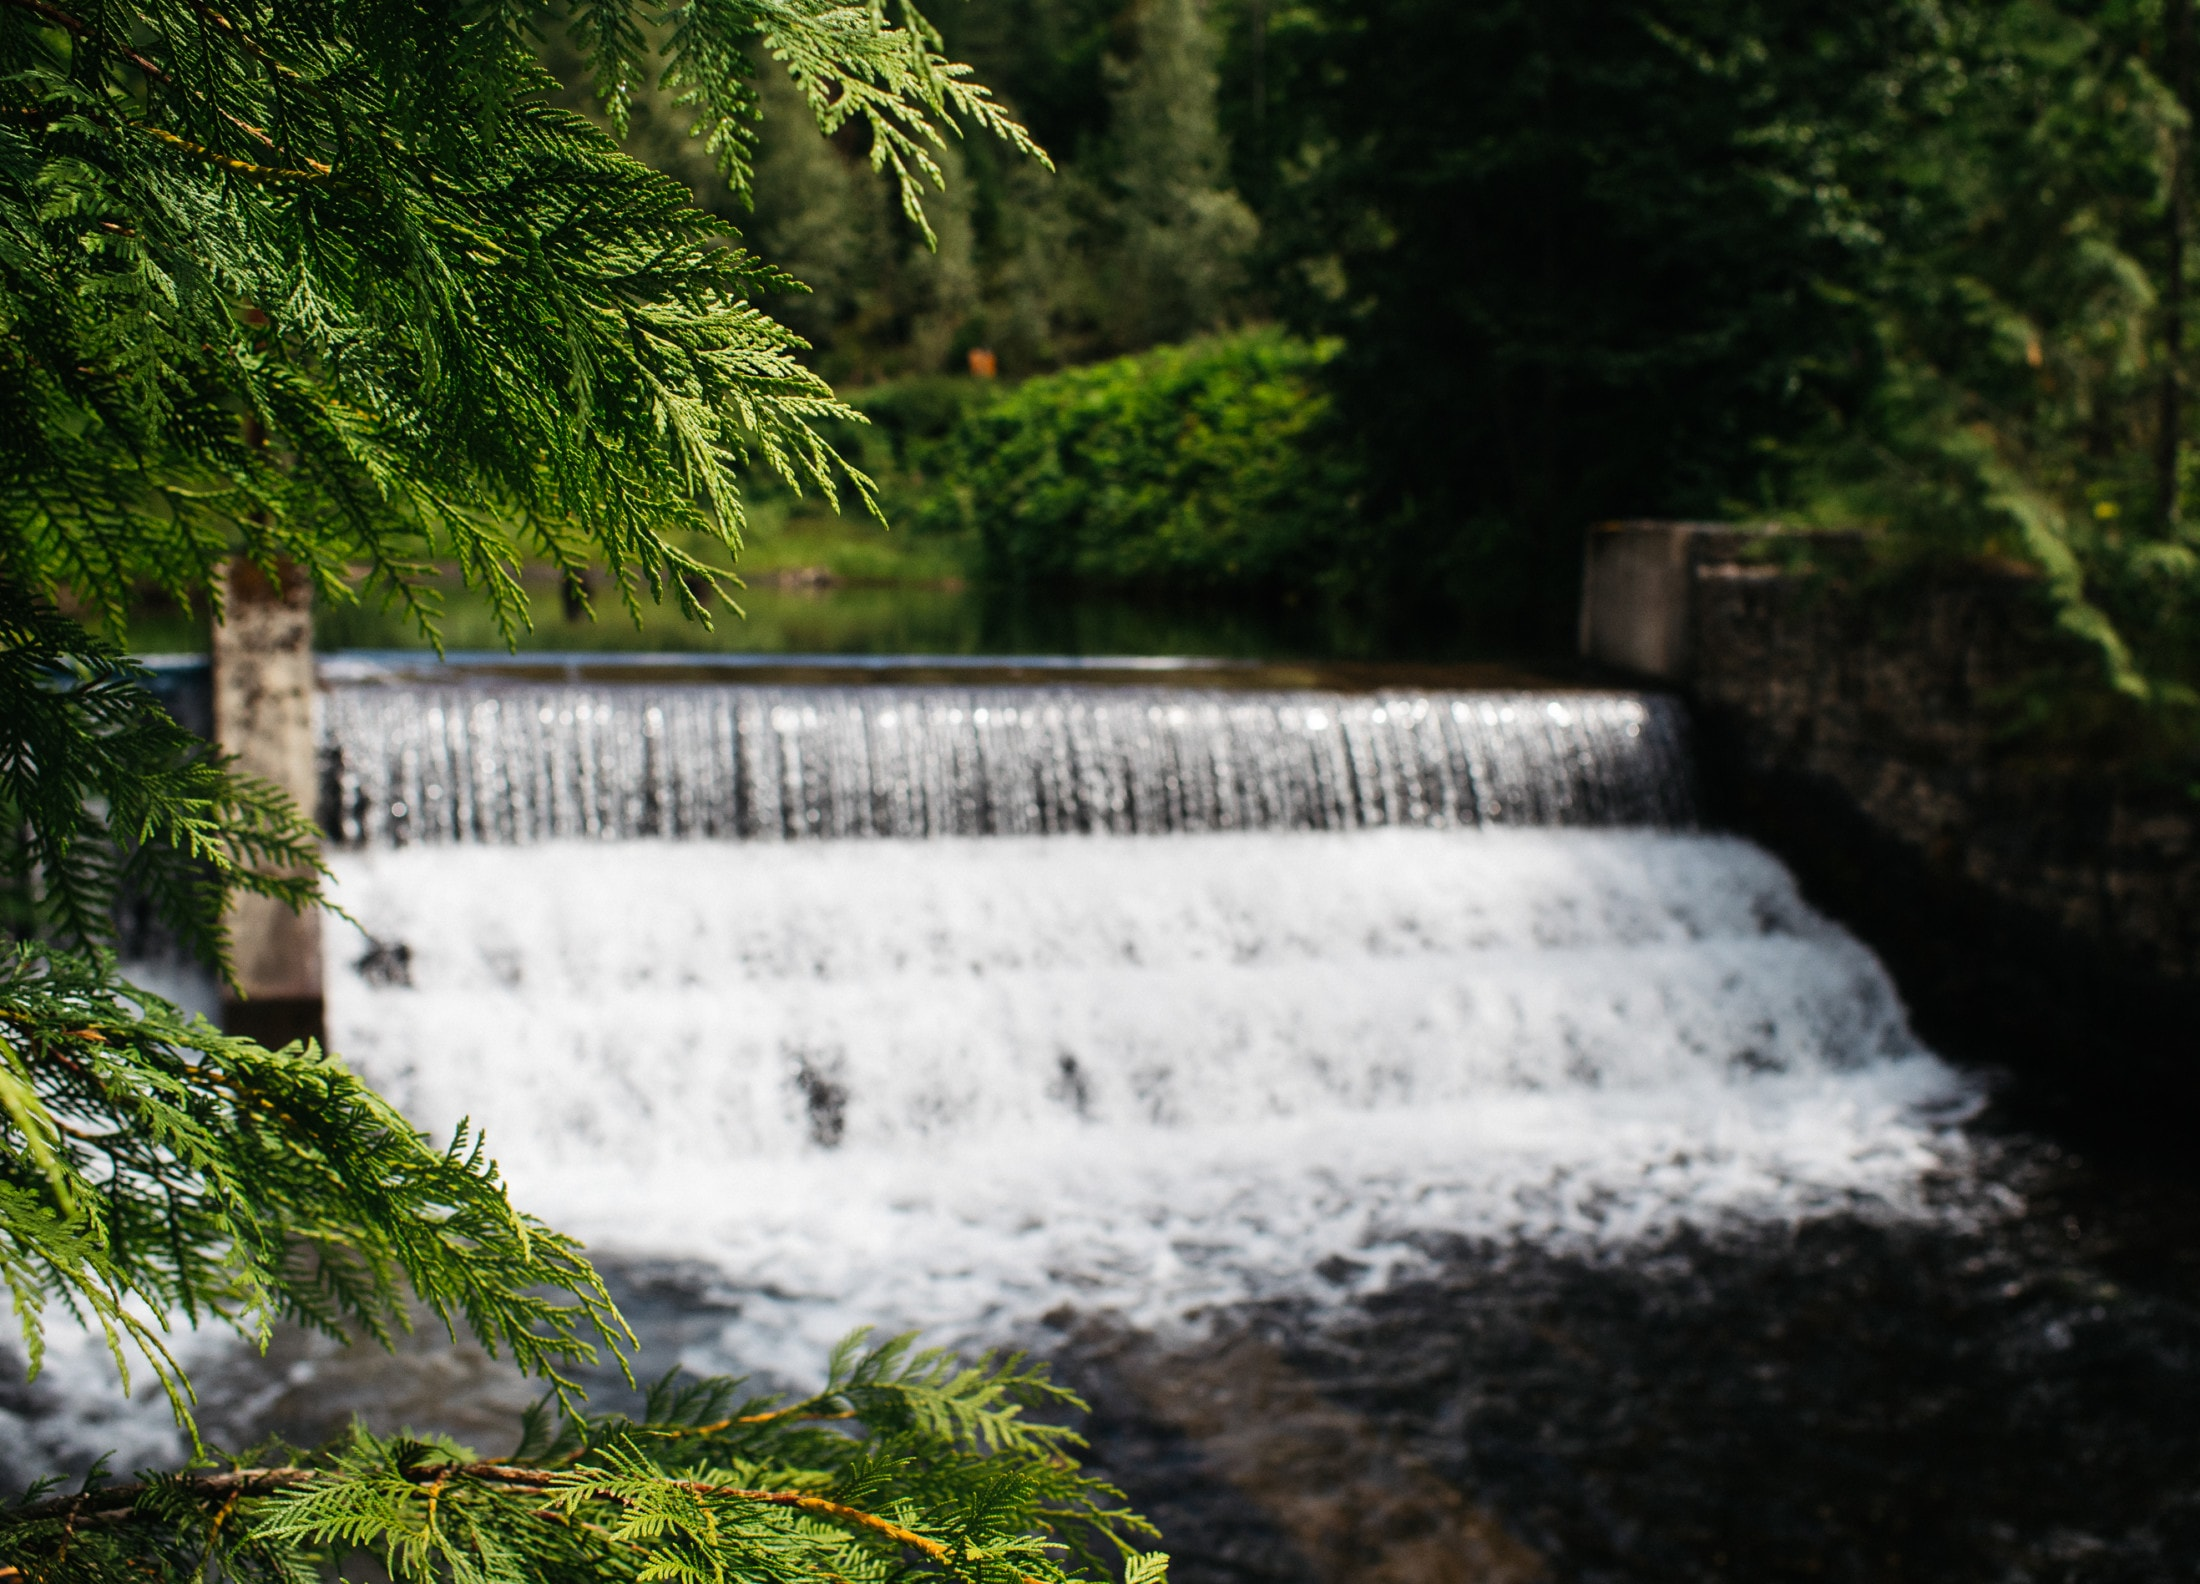 The Homestead Hydro Systems' dam